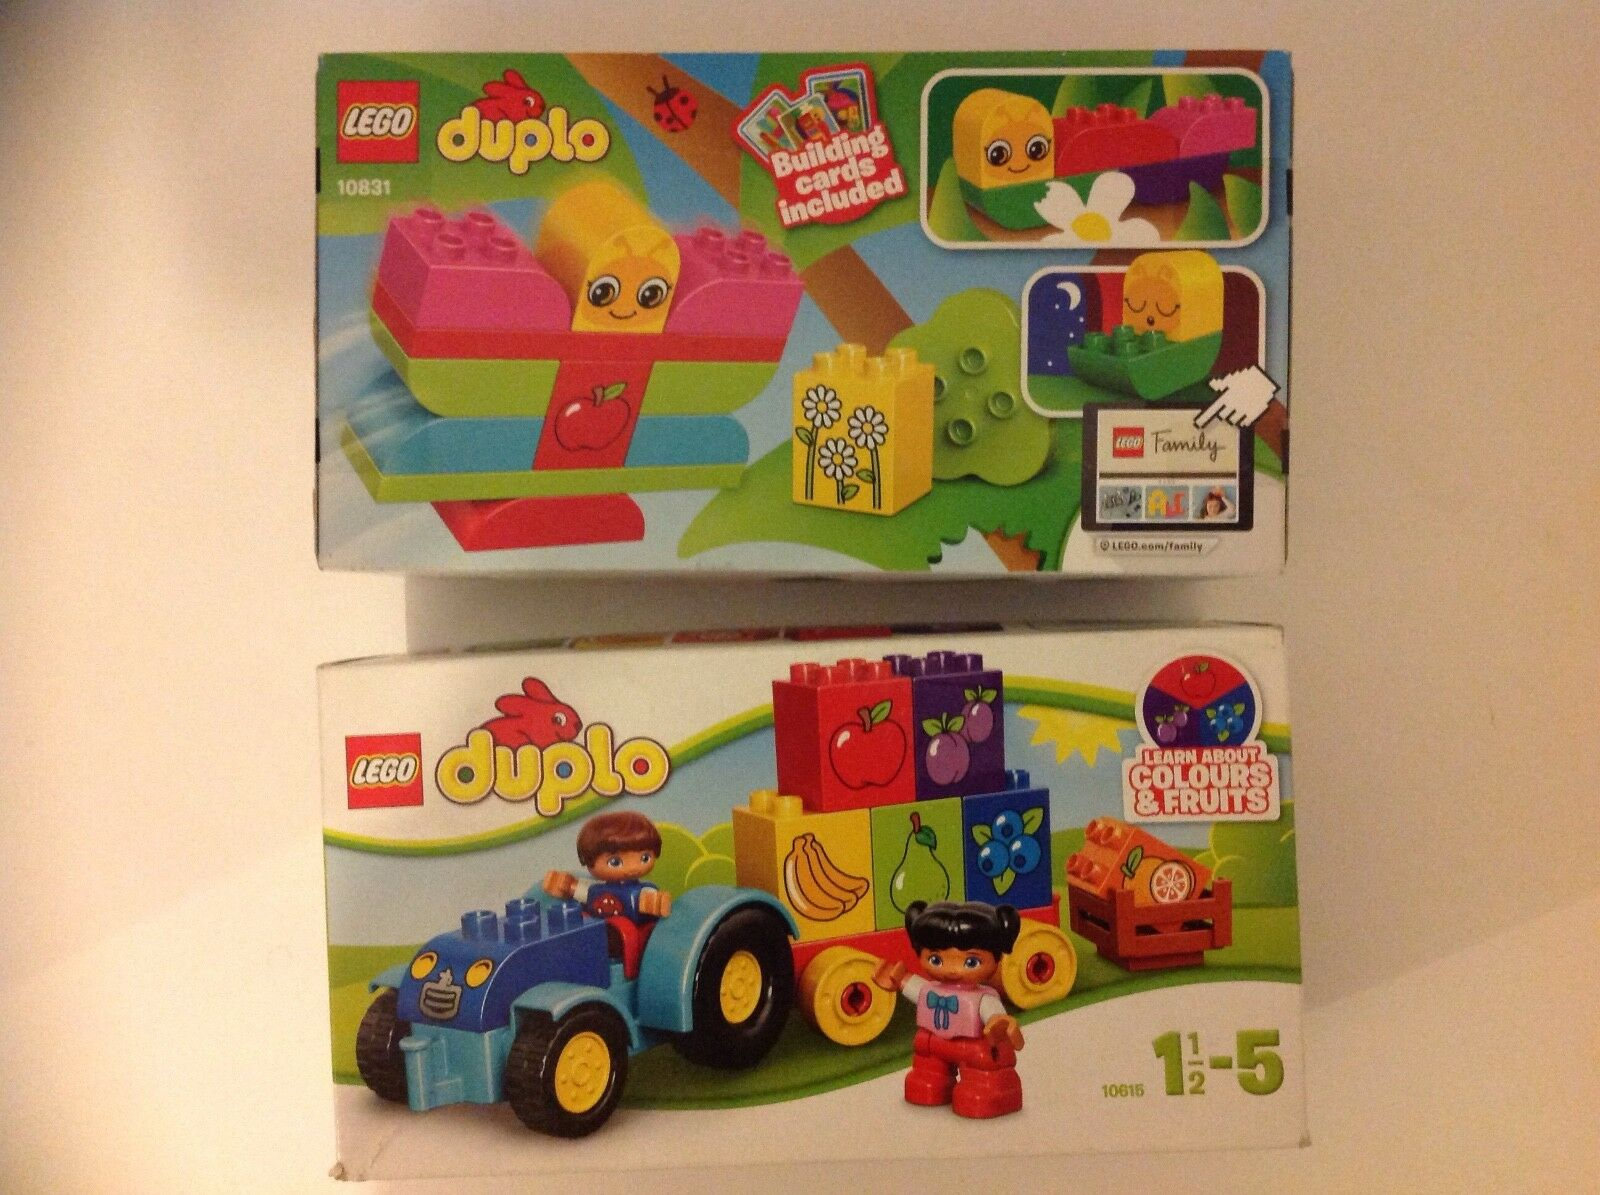 2 NEW LEGO DUPLO Sets My First Tractor 10615 & My First Caterpillar 10831